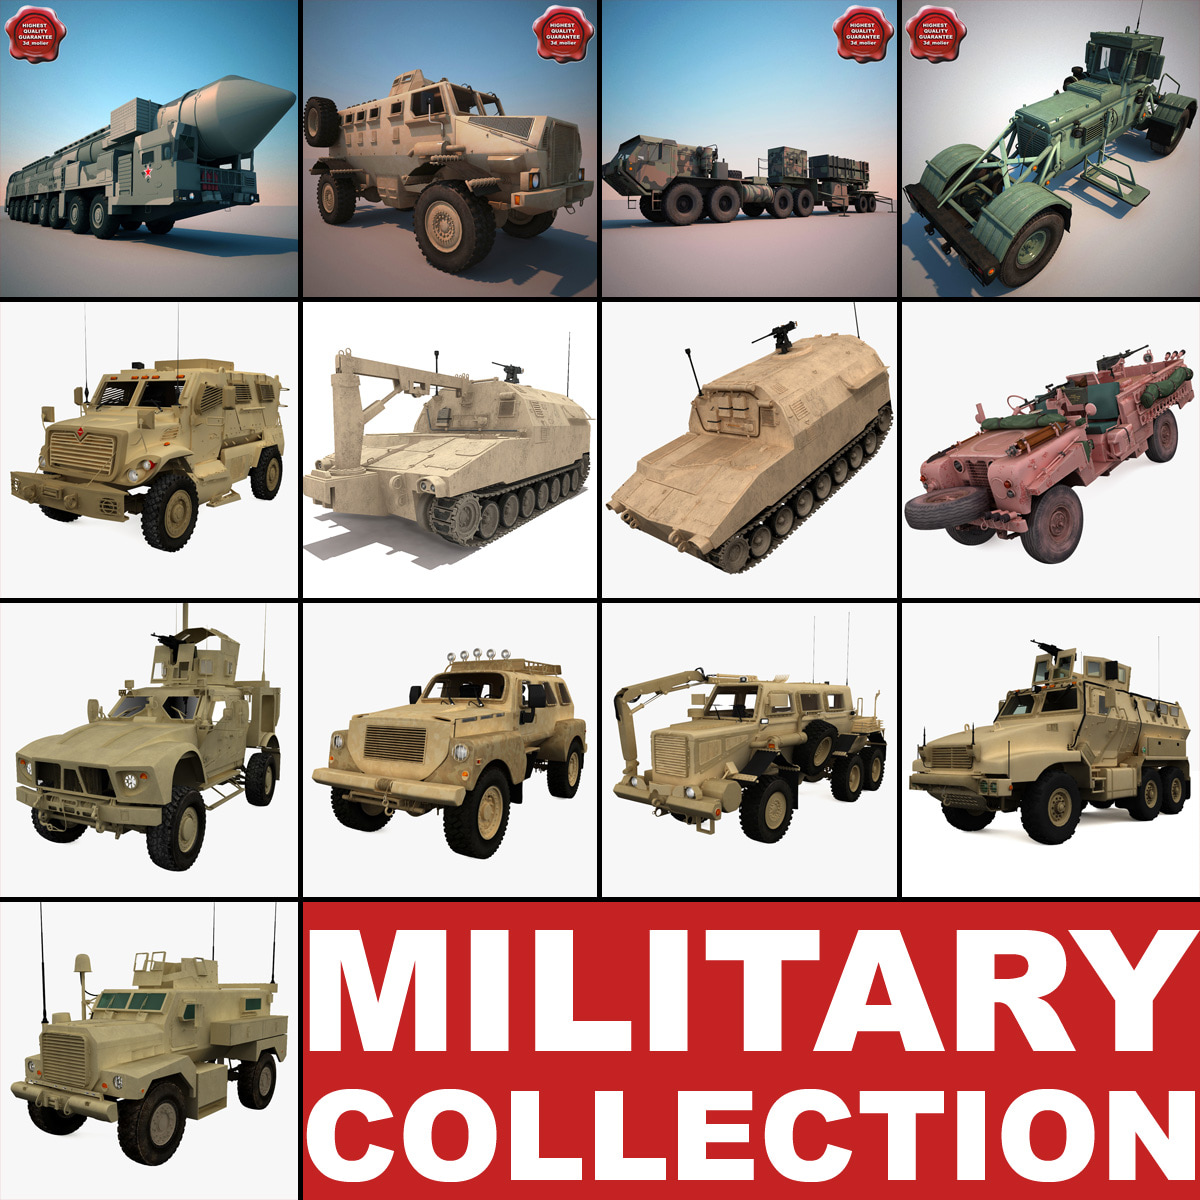 Military_Vehicles_Collection_000.jpg